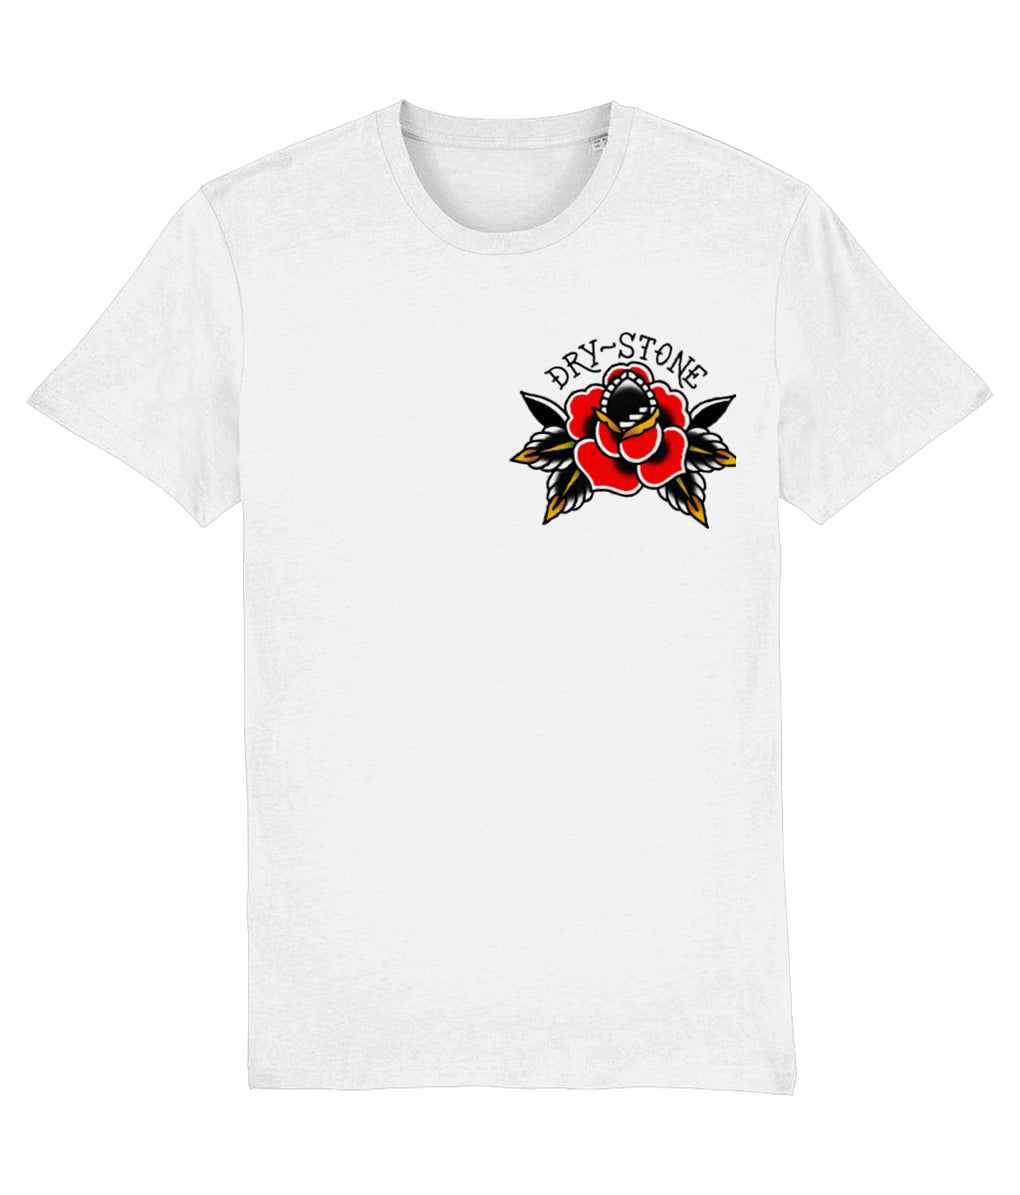 tattoo inspired T-shirt X-Small Rose Tattoo - White Tee